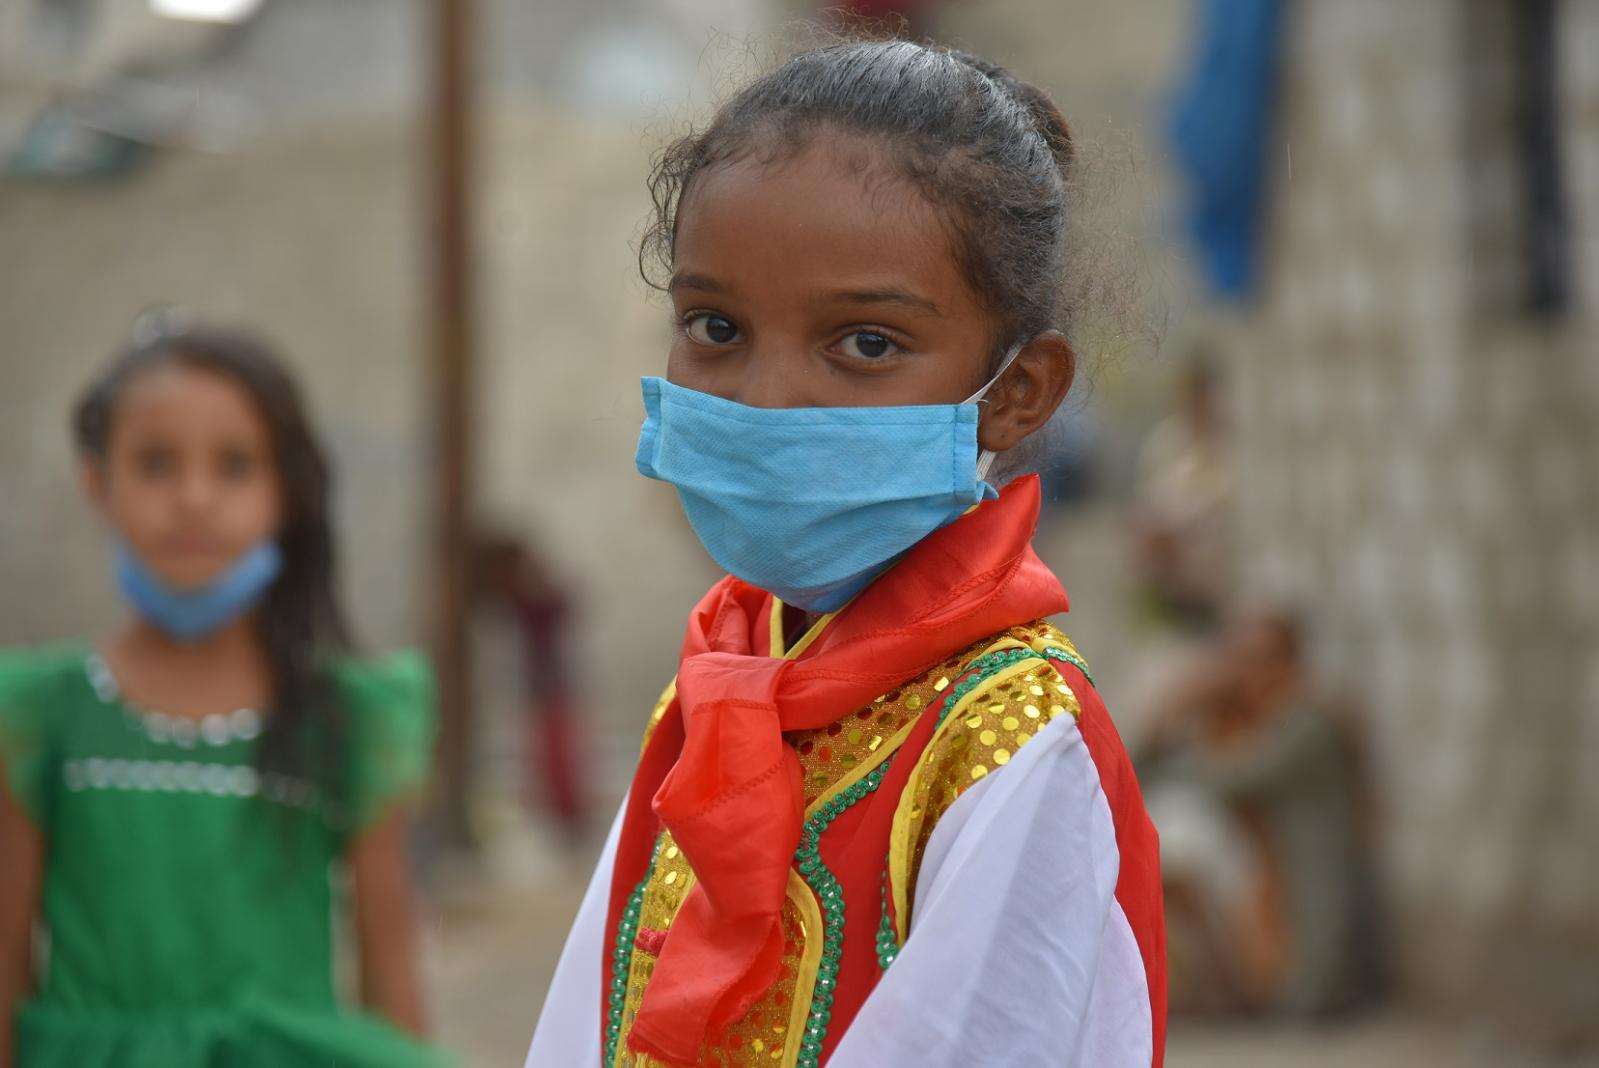 Yemeni young girl in mask.